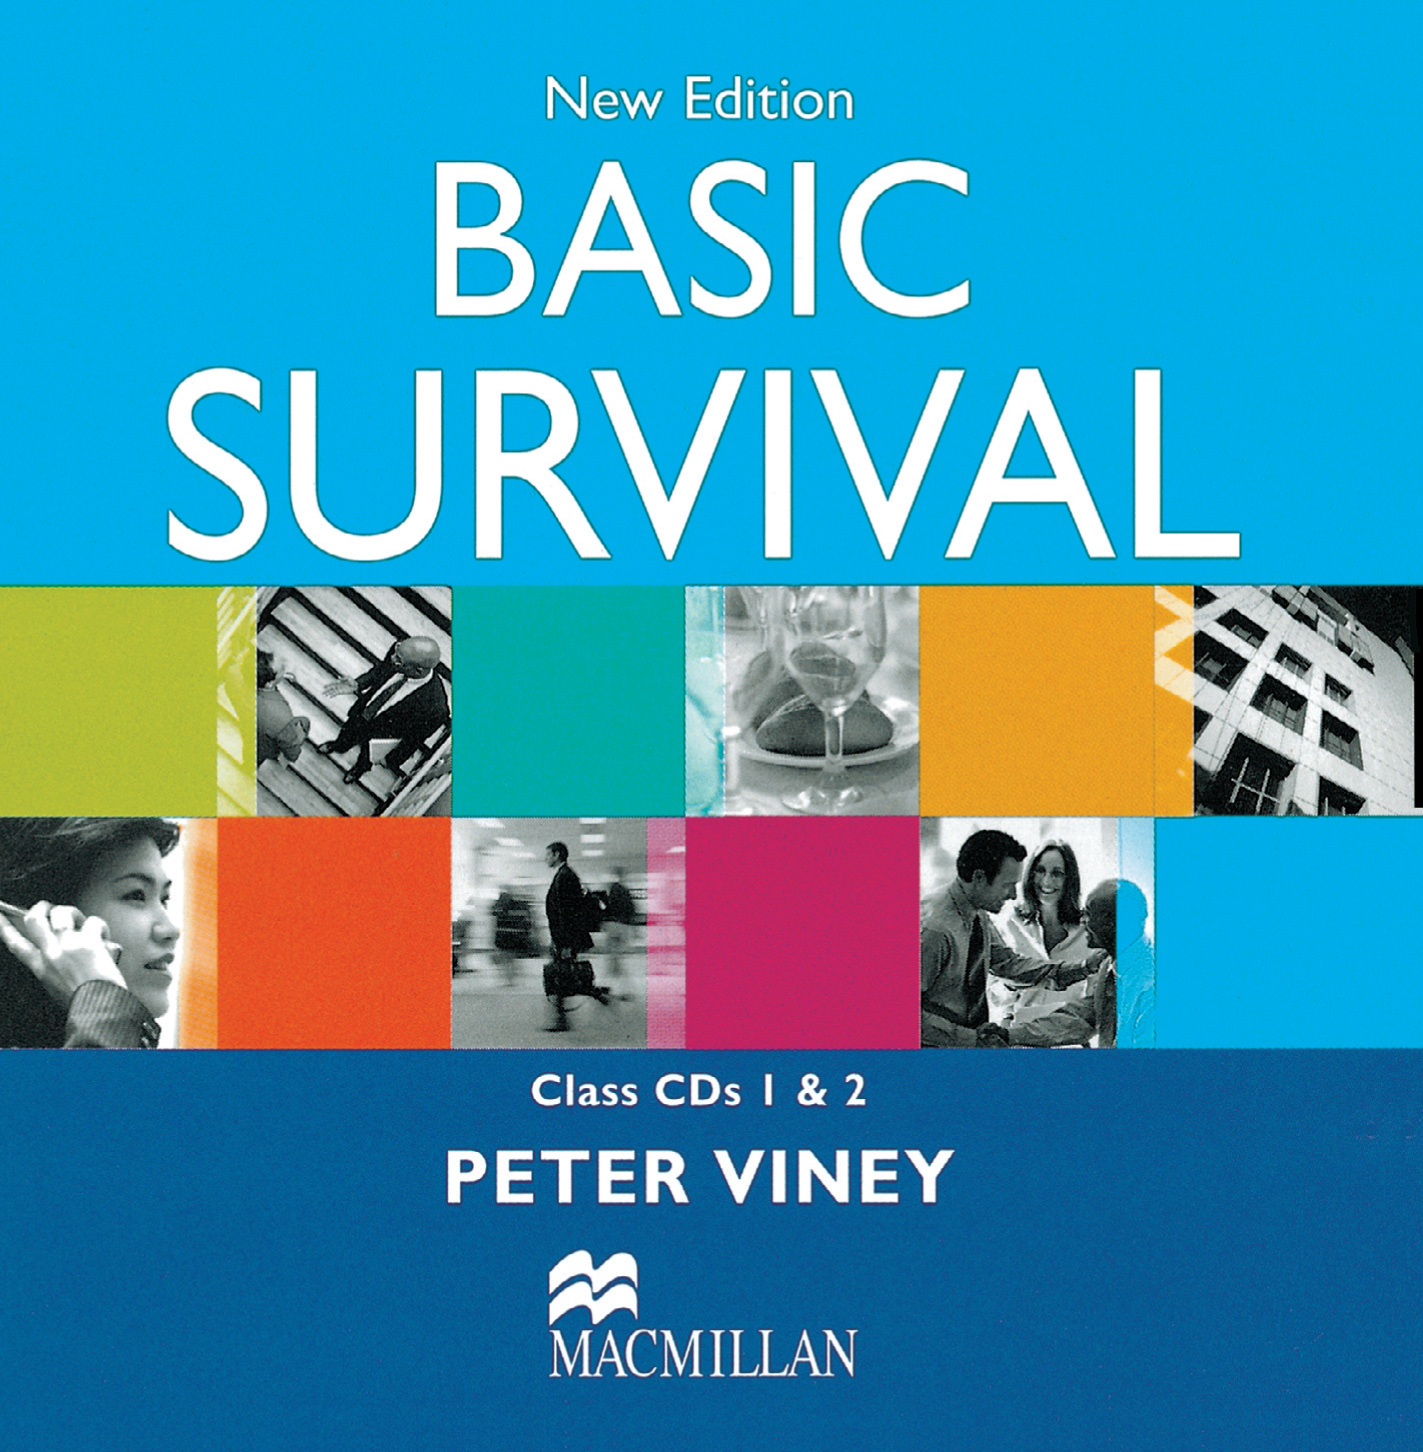 New Edition Basic Survival Audio CD